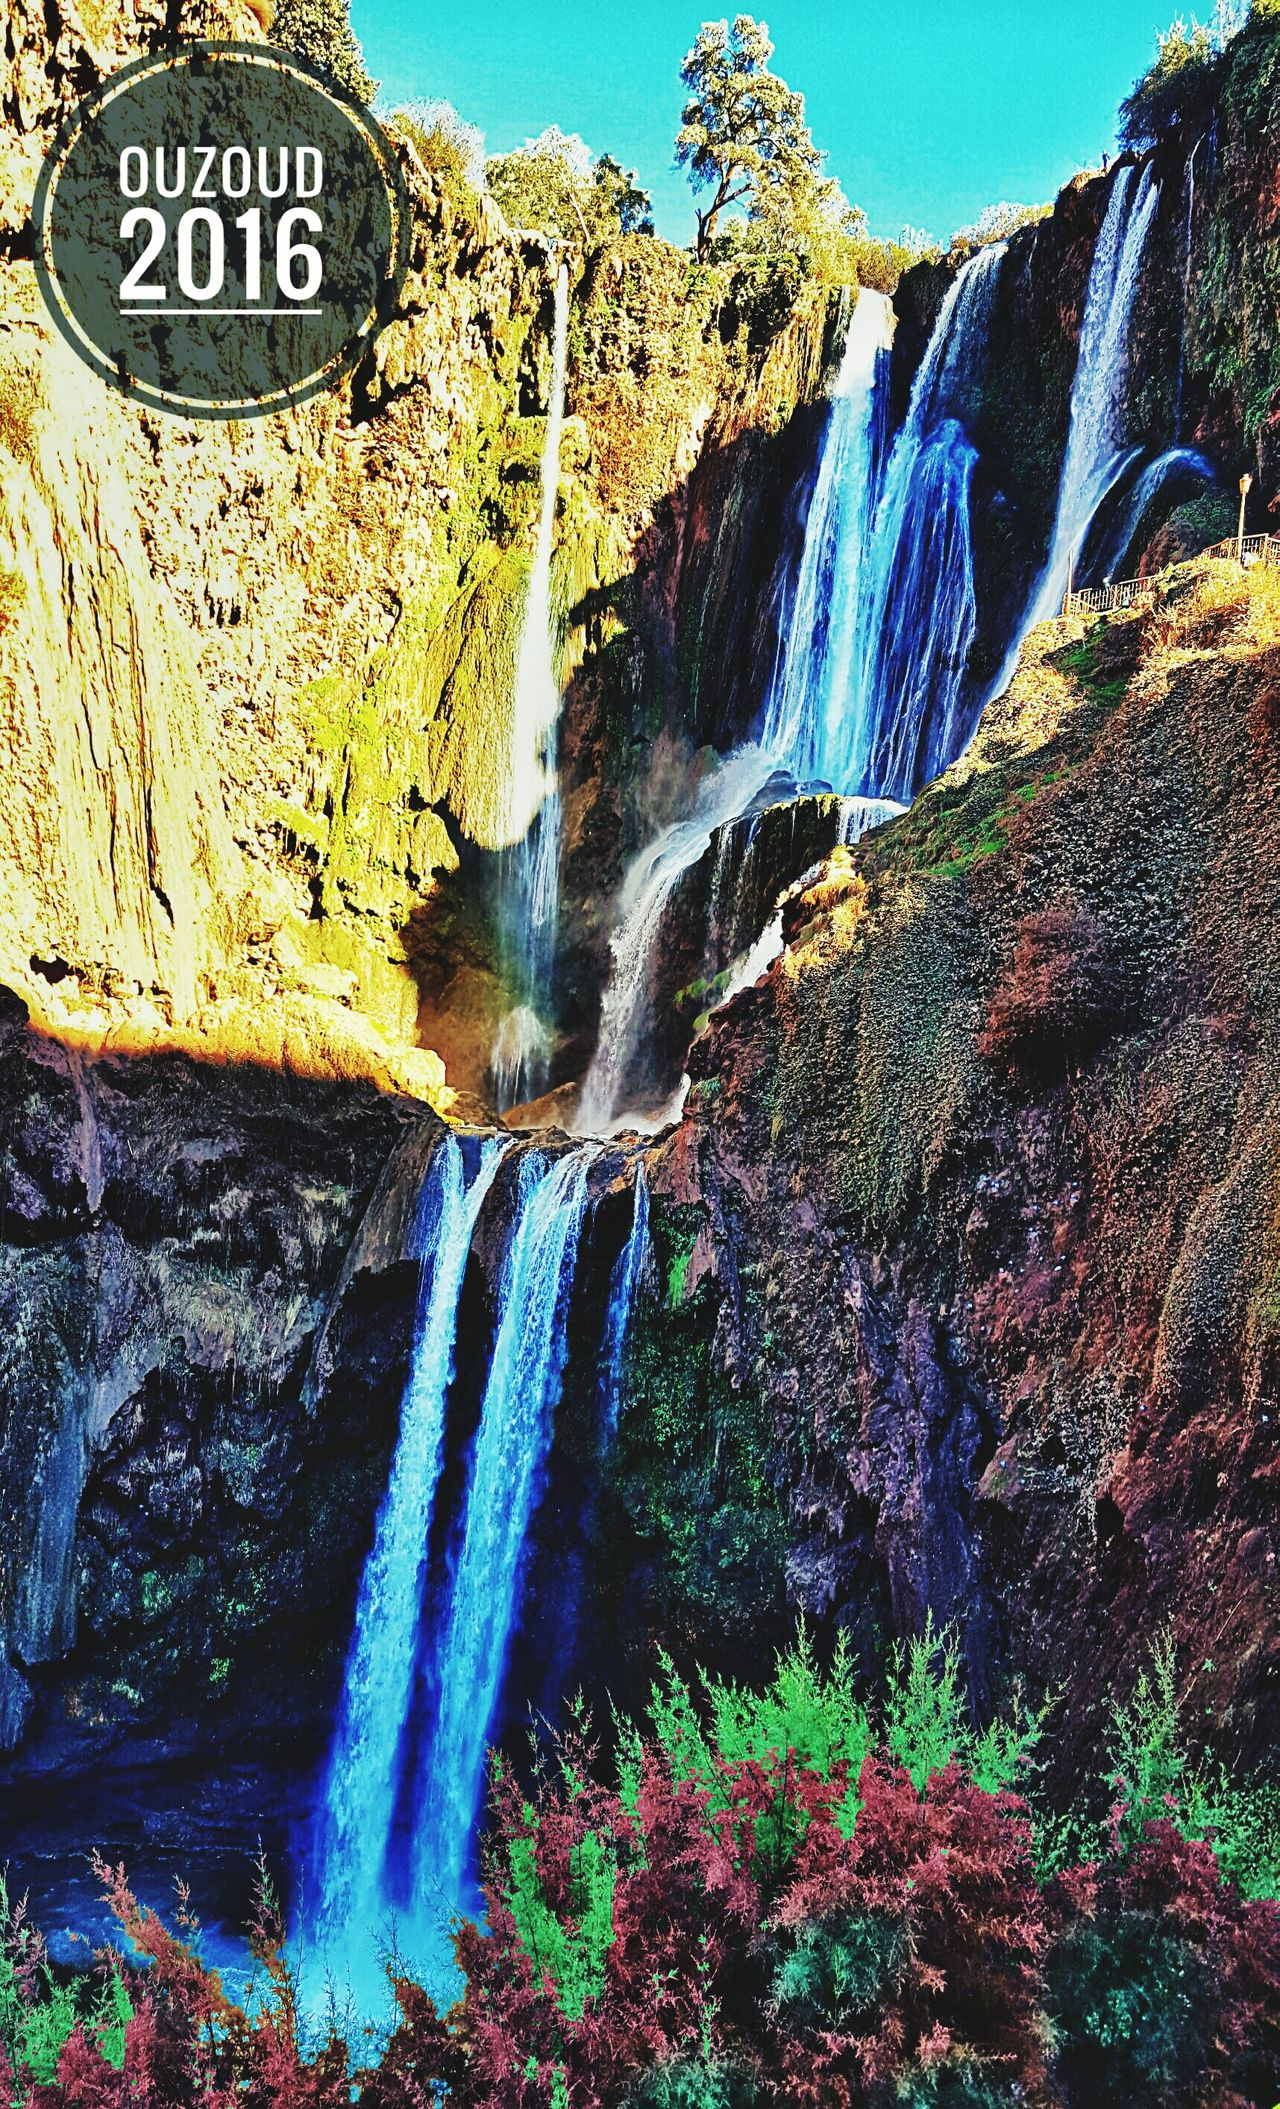 Multi Colored Outdoors Water Day Waterfalls Ouzoud Falls Nature Nature Photography Morocco Beautiful Day View From Below EyeEm Best Shots - Nature EyeEm Best Shots - Landscape Holidays Beautiful View